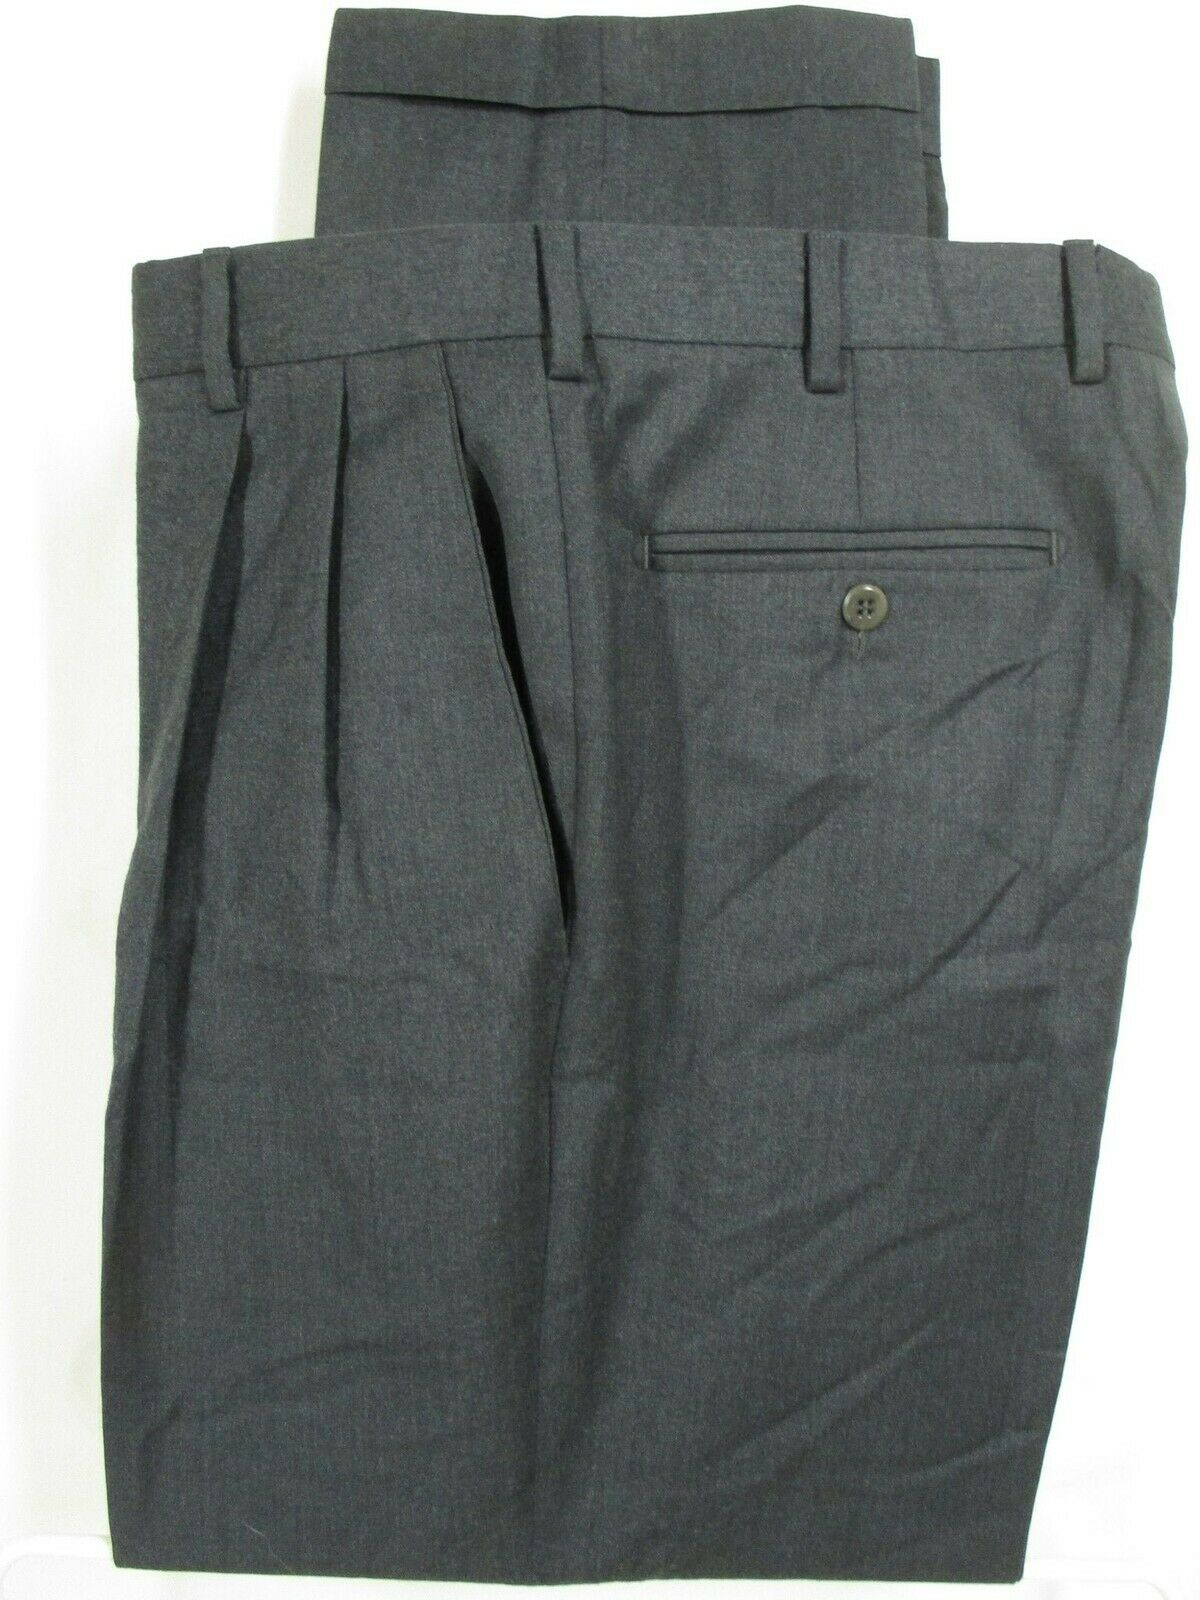 Zanella Bennett Mens Grey Pleated Wool Dress Pants Size 33 33x29